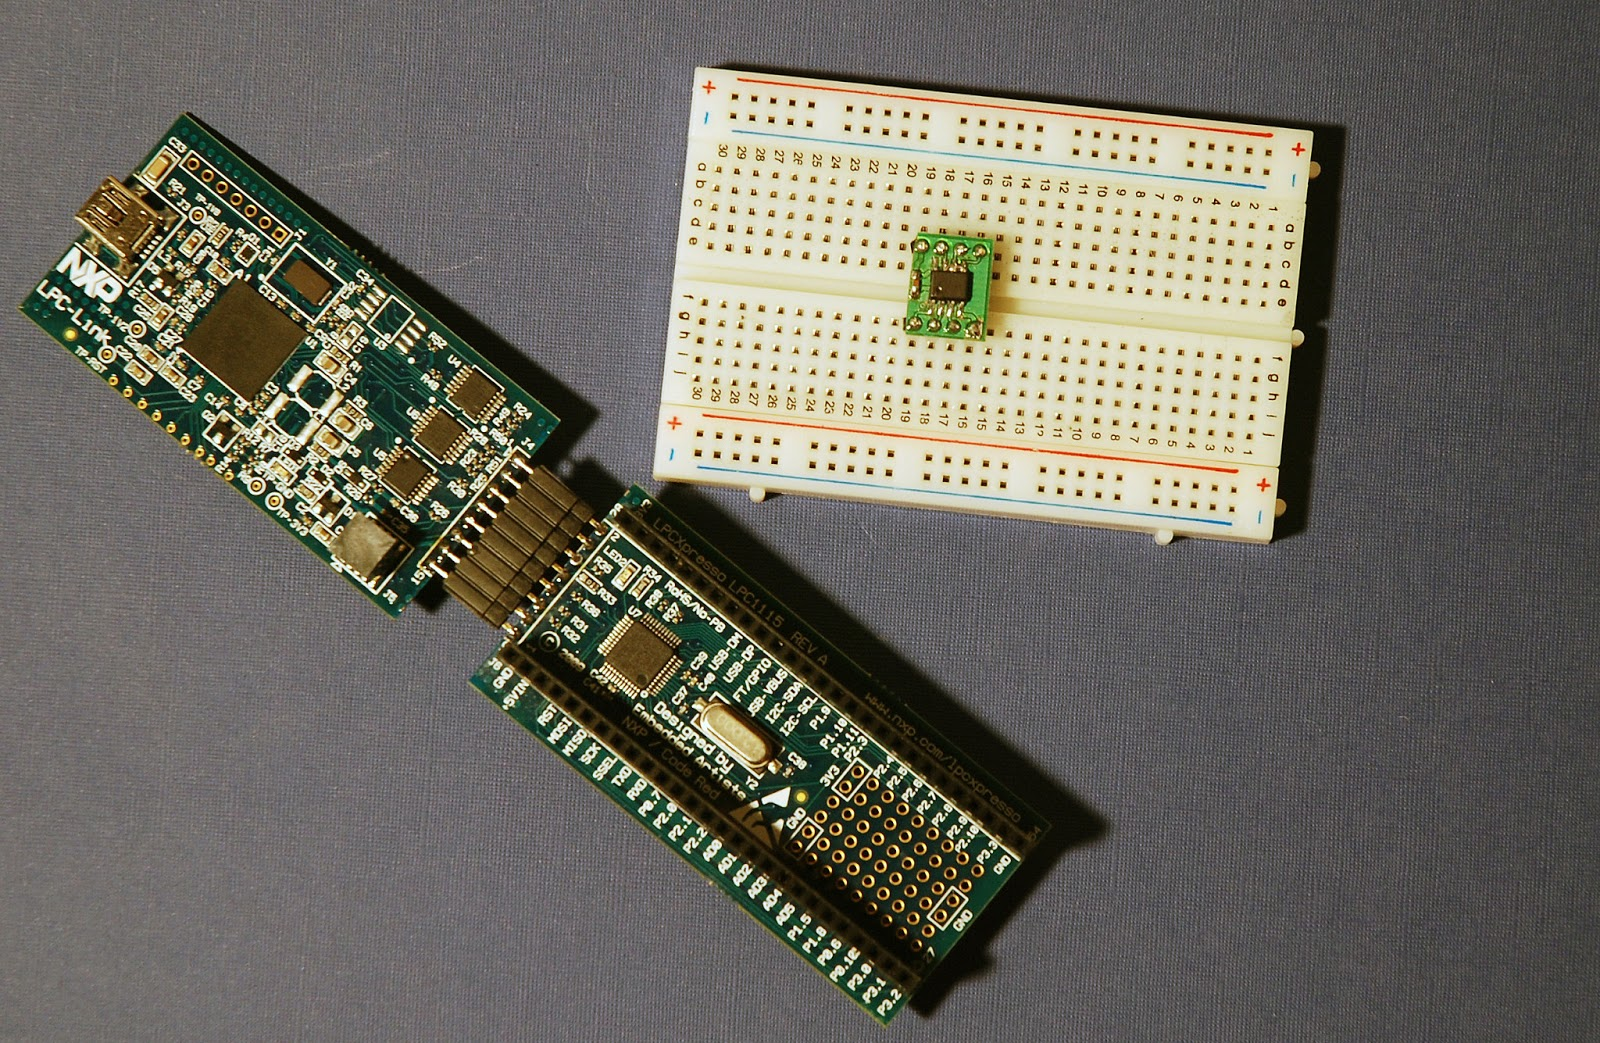 Rubis World Of Embedded Electronics Meet The Lpcxpresso Lm75 Temperature Sensor Schematic Lpc 1115 And On A Breadboard